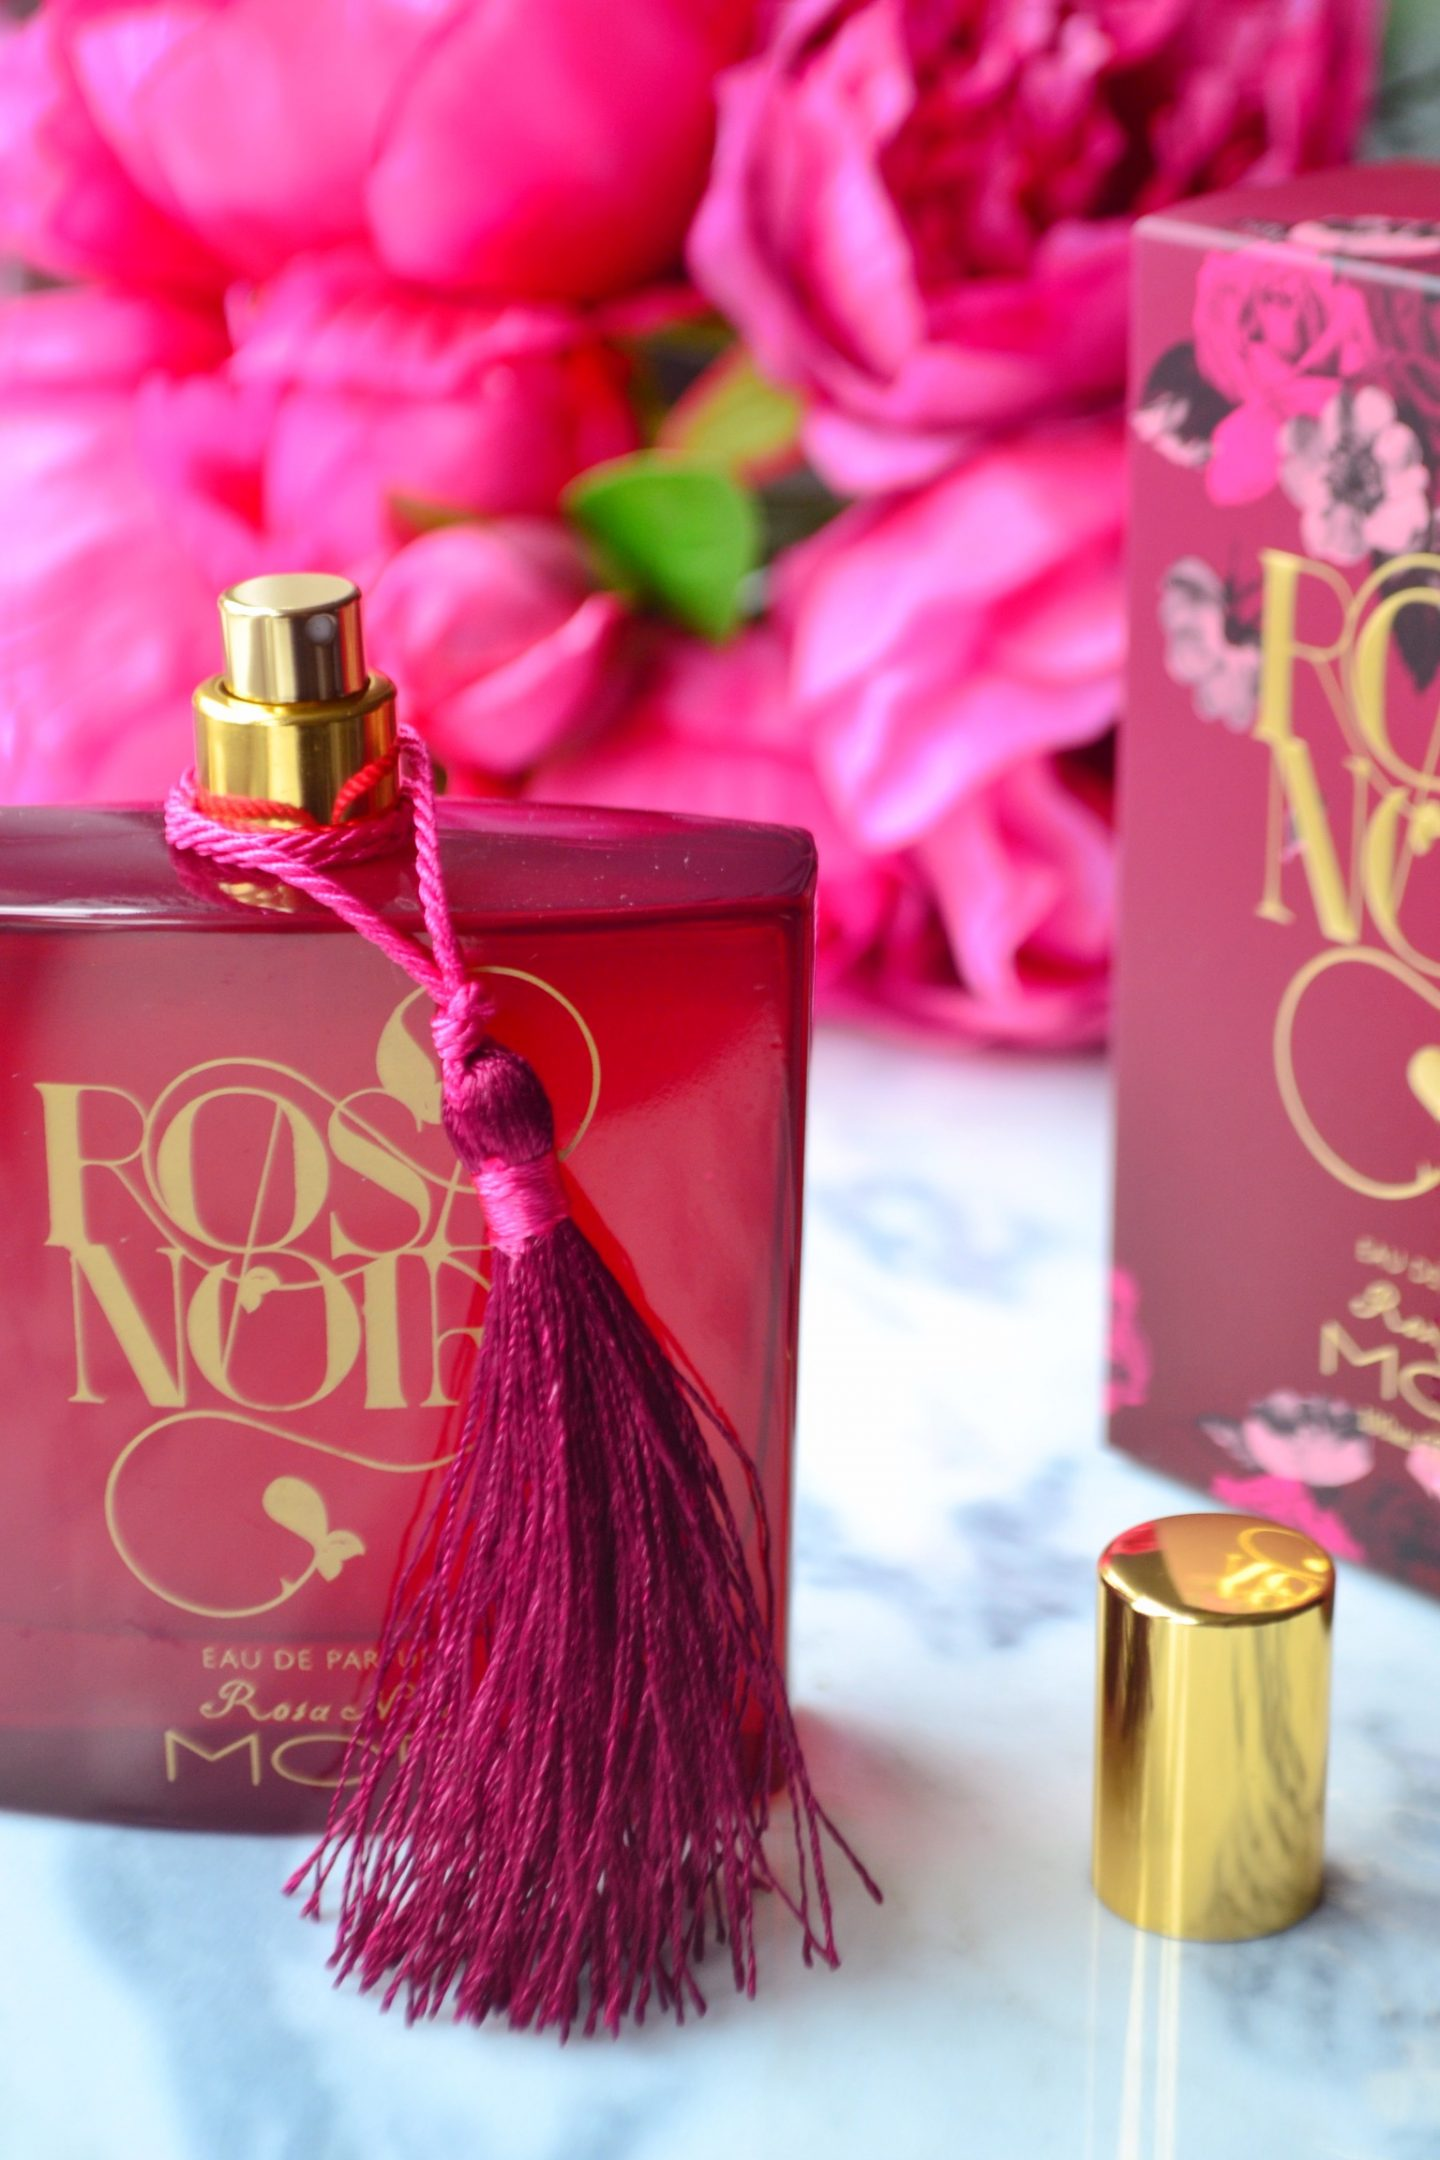 rose-noir-perfume-shop